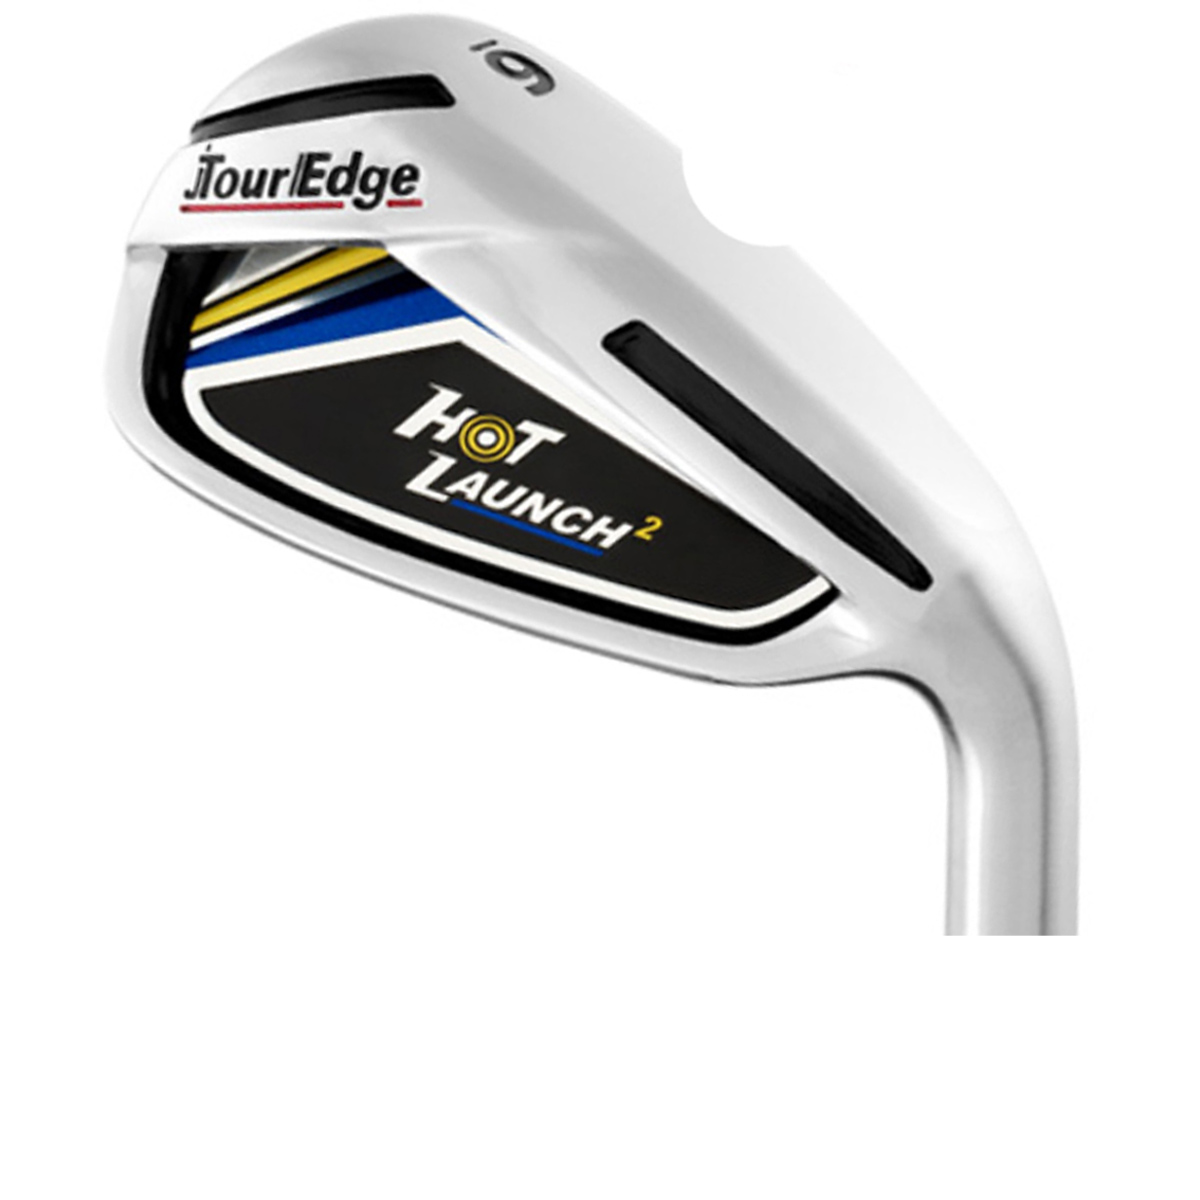 HOT LAUNCH2 アイアン(5本セット) UST MAMIYA FOR TOUR EDGE